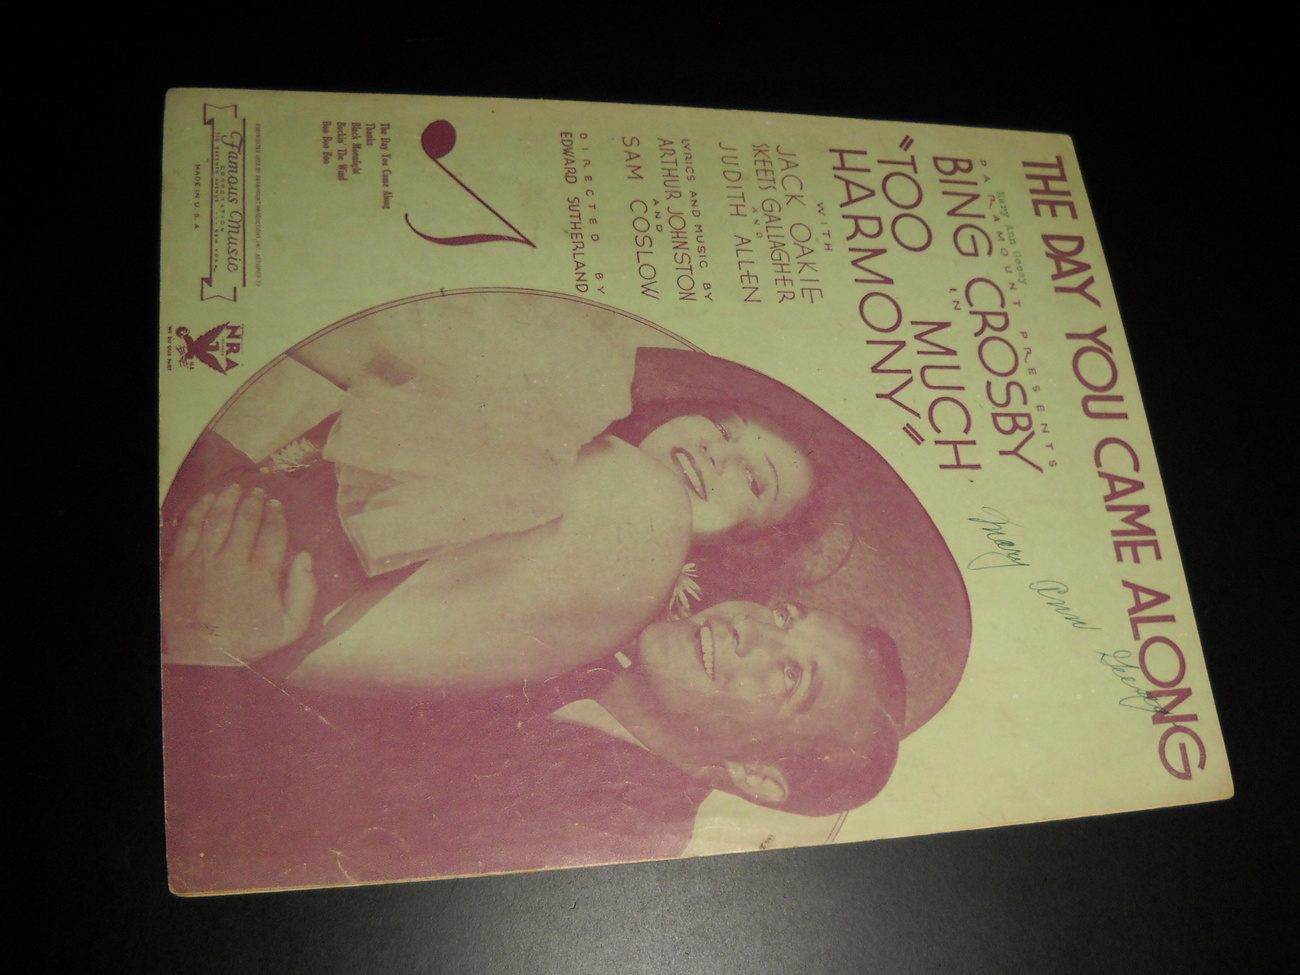 Sheet_music_the_day_you_came_along_too_much_harmony_bing_crosby_1933_famous_music_01